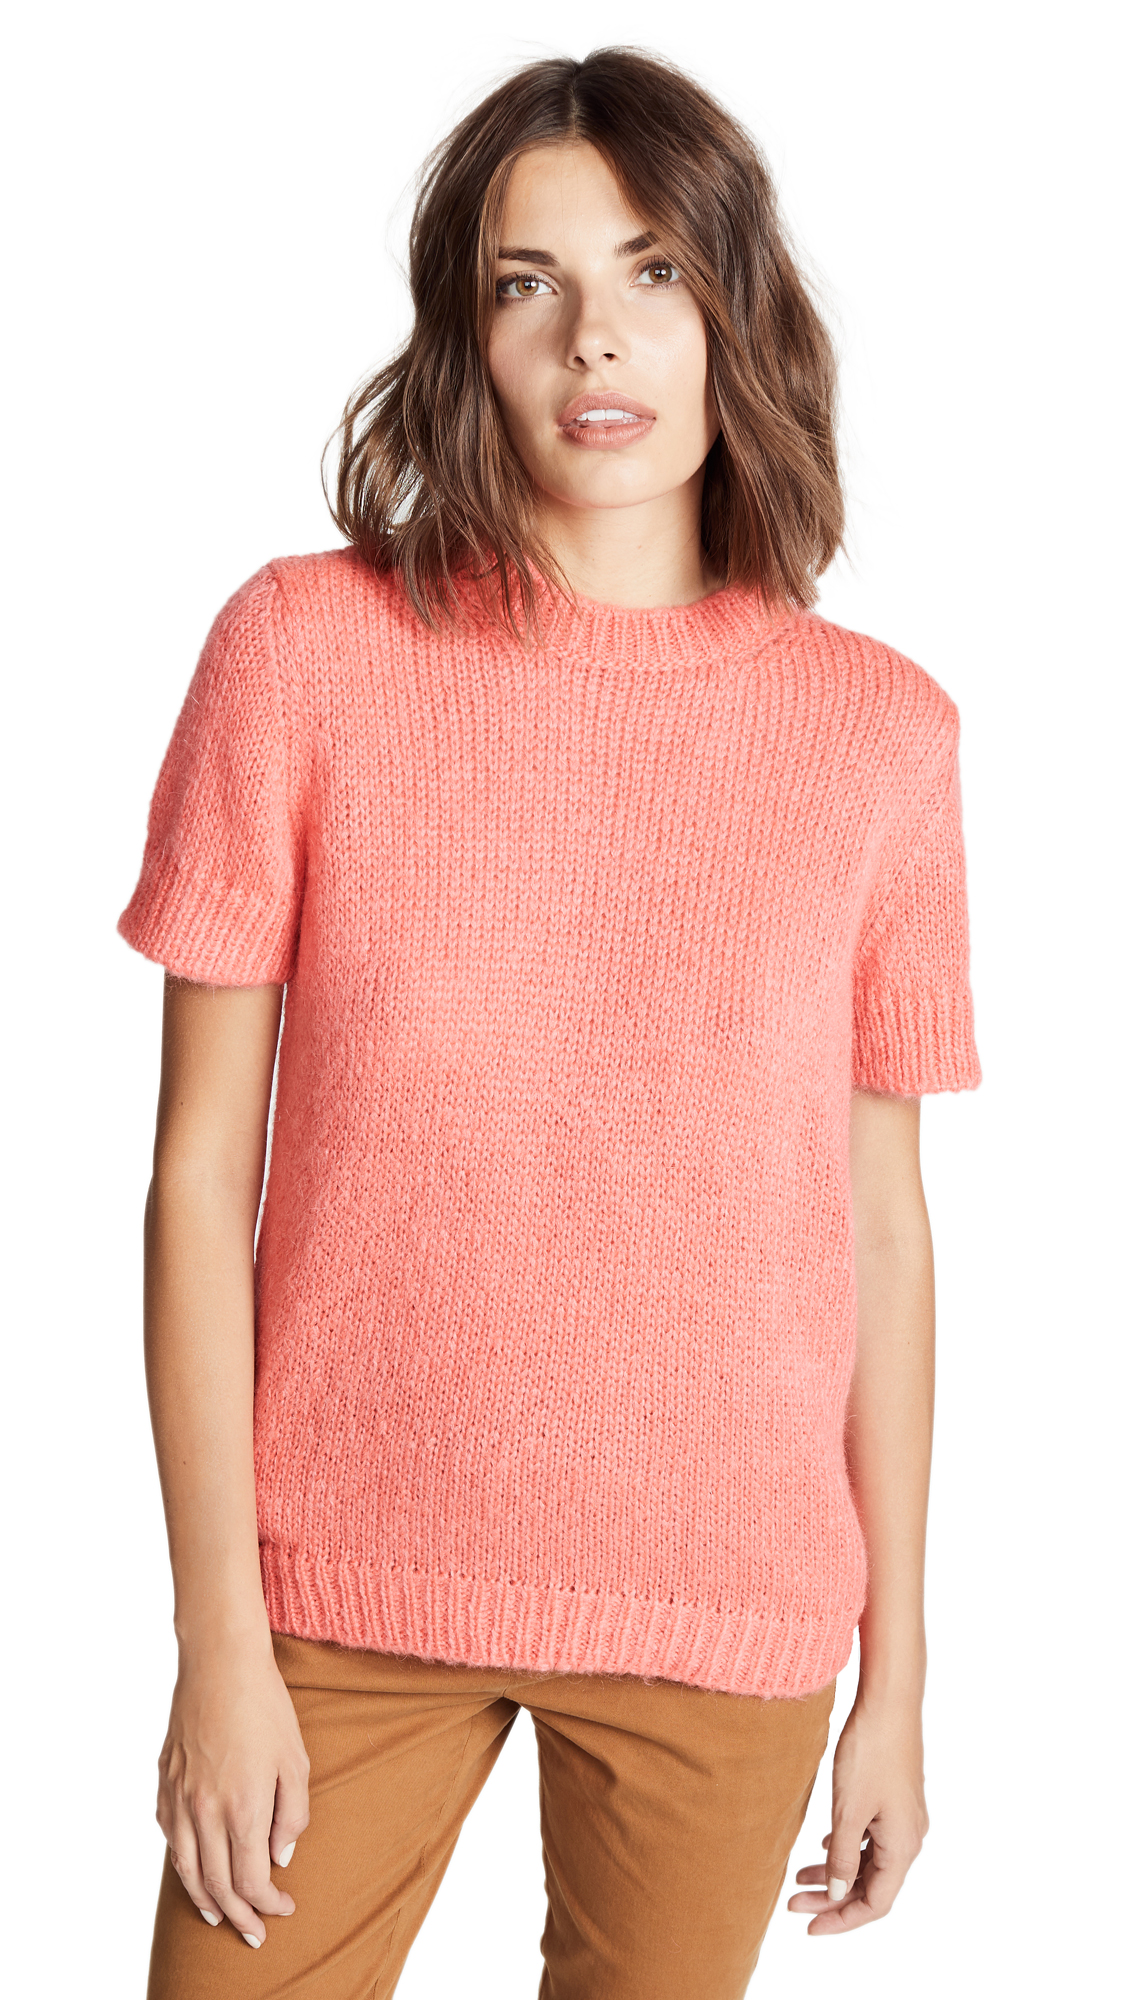 DOROTHEE PULLOVER